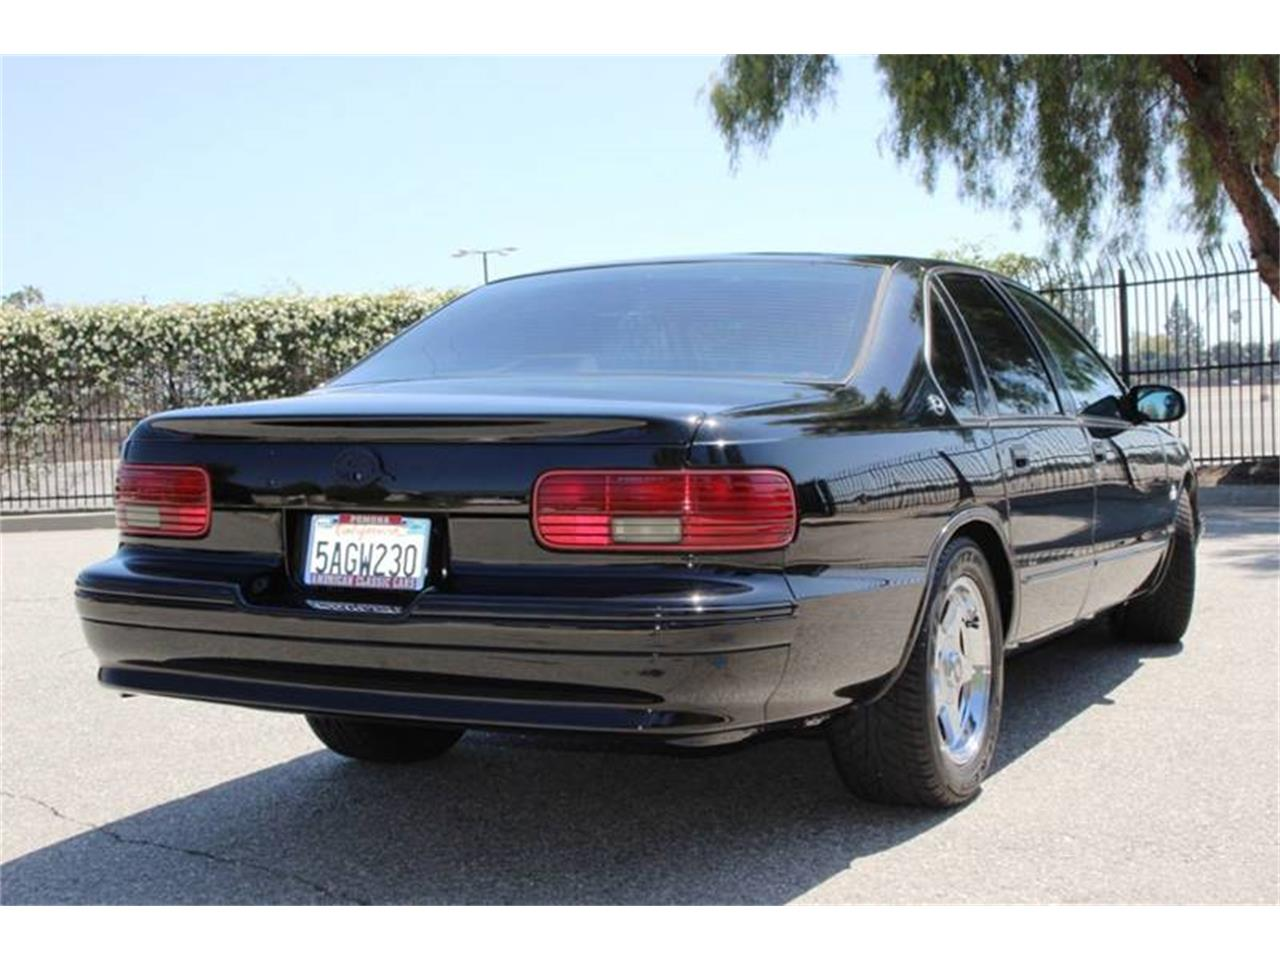 1995 Chevrolet Impala for sale in La Verne, CA – photo 11